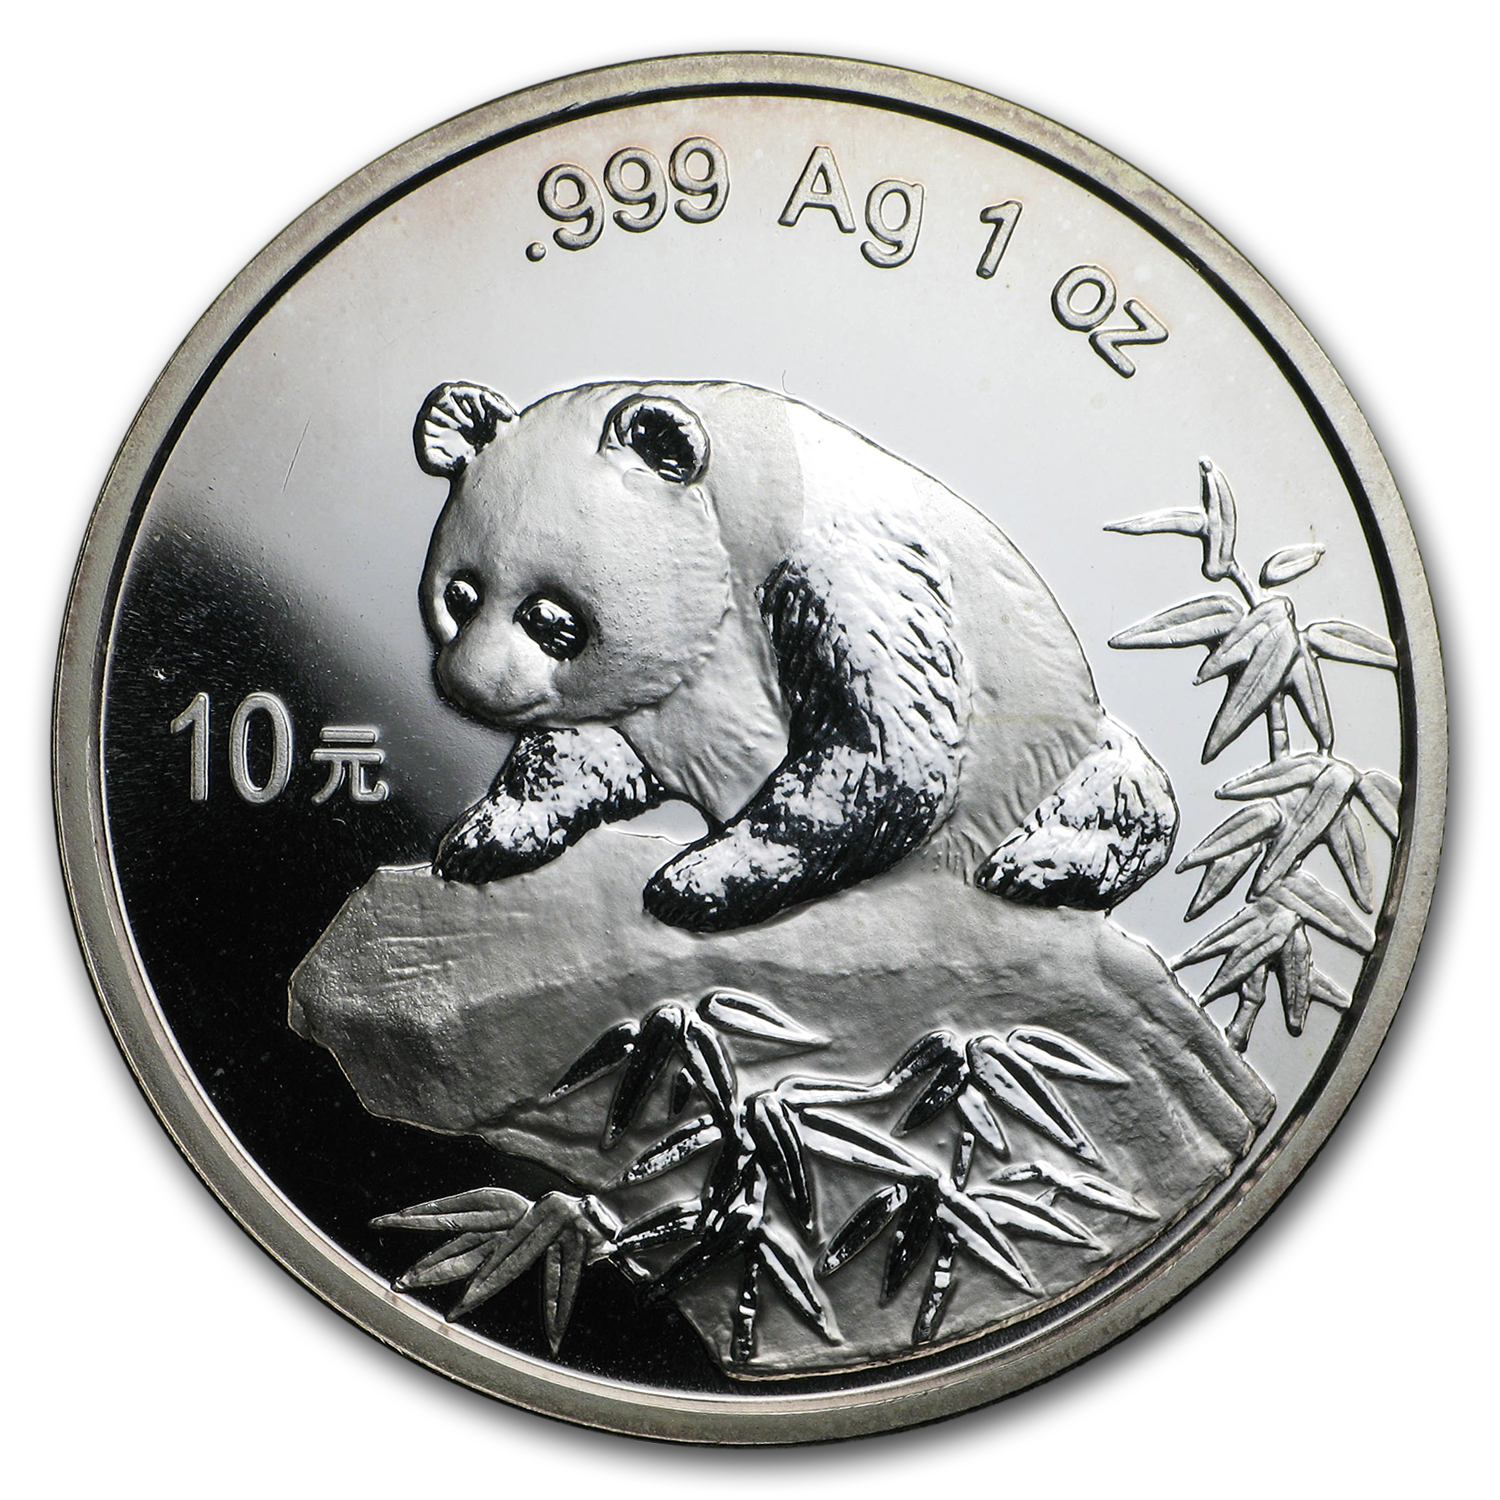 1999 China 1 oz Silver Panda Large Date BU (Capsule only)